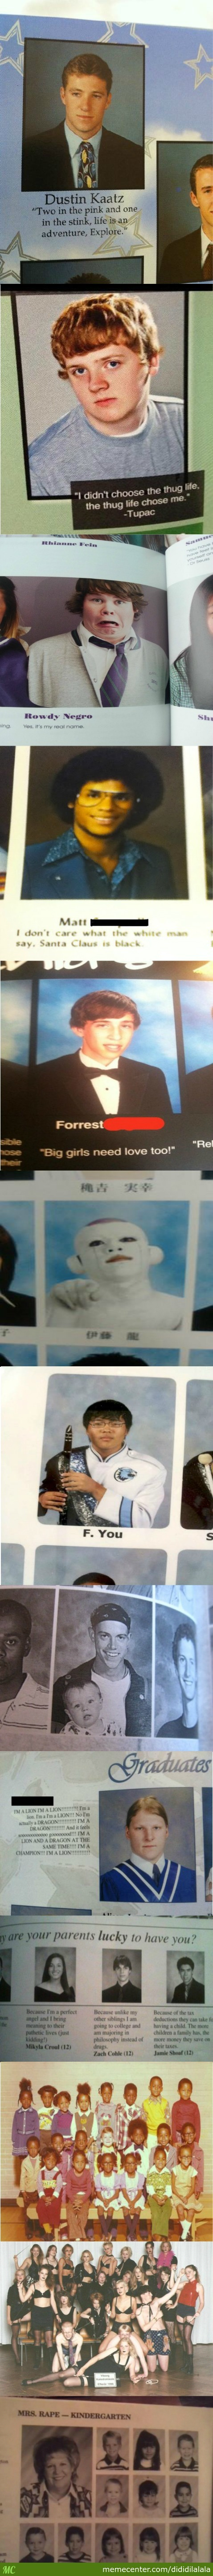 Epic Yearbook Photos